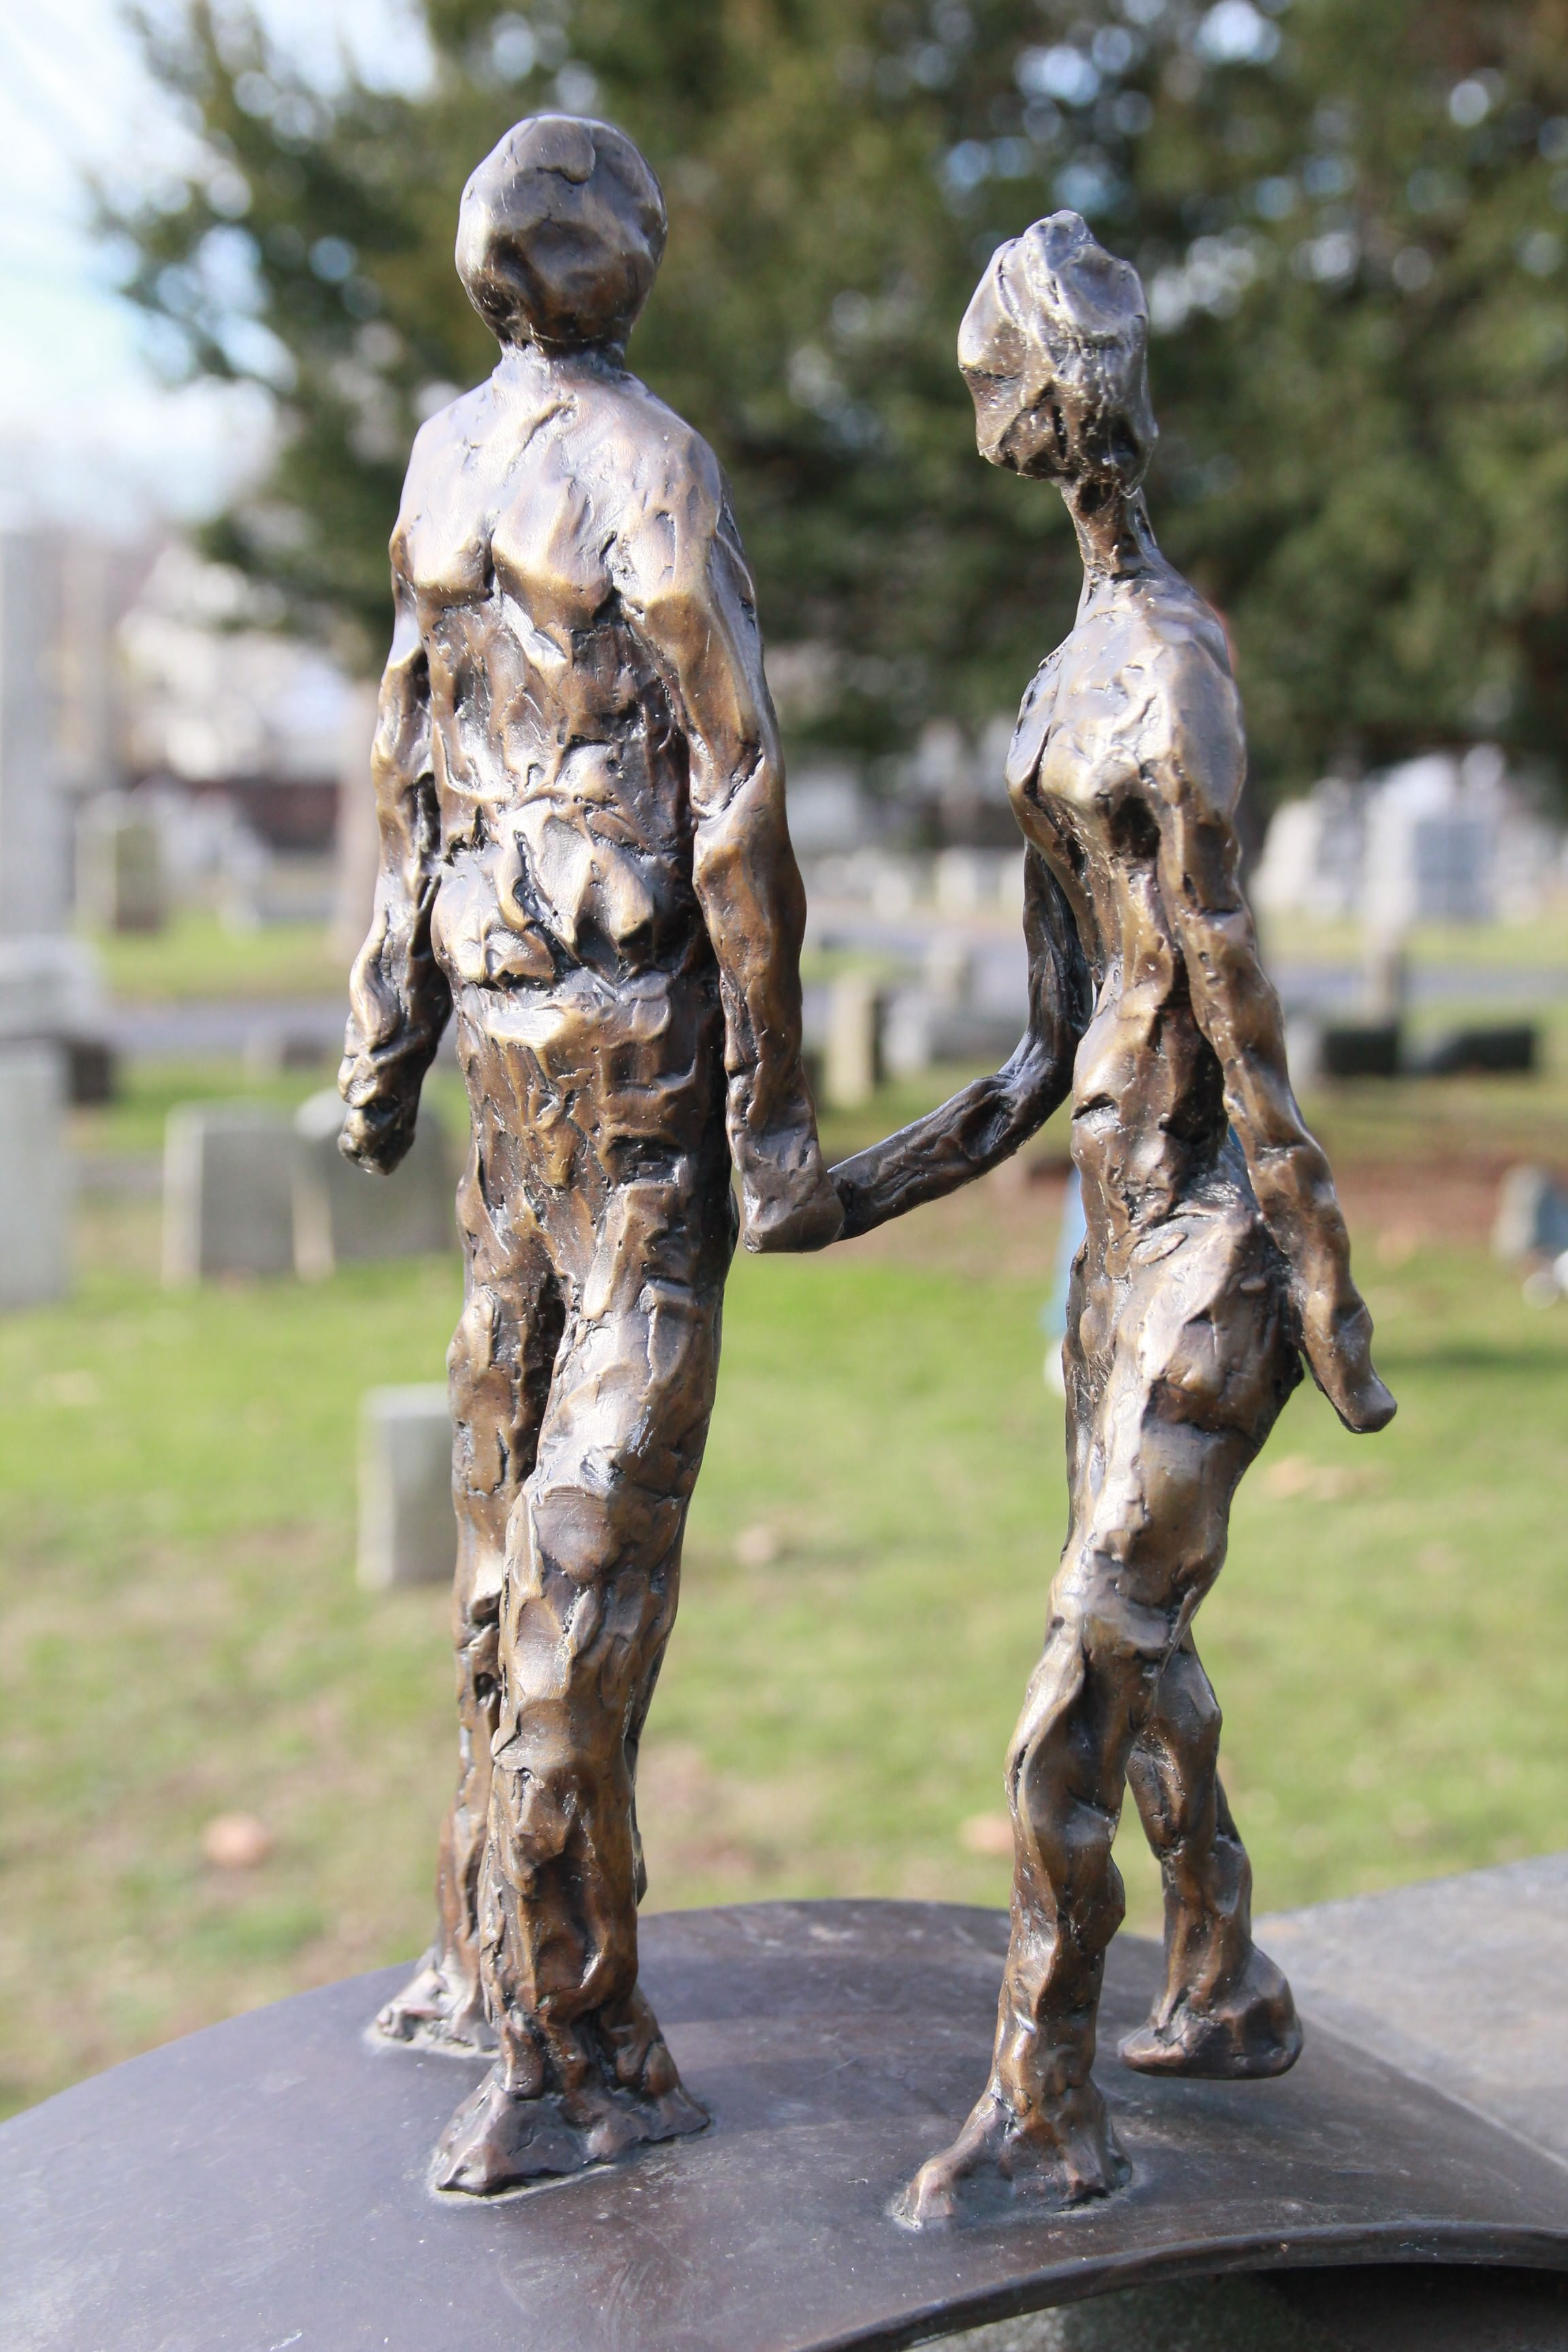 Grove Street Cemetery Headstone Two People Walking Sculpture